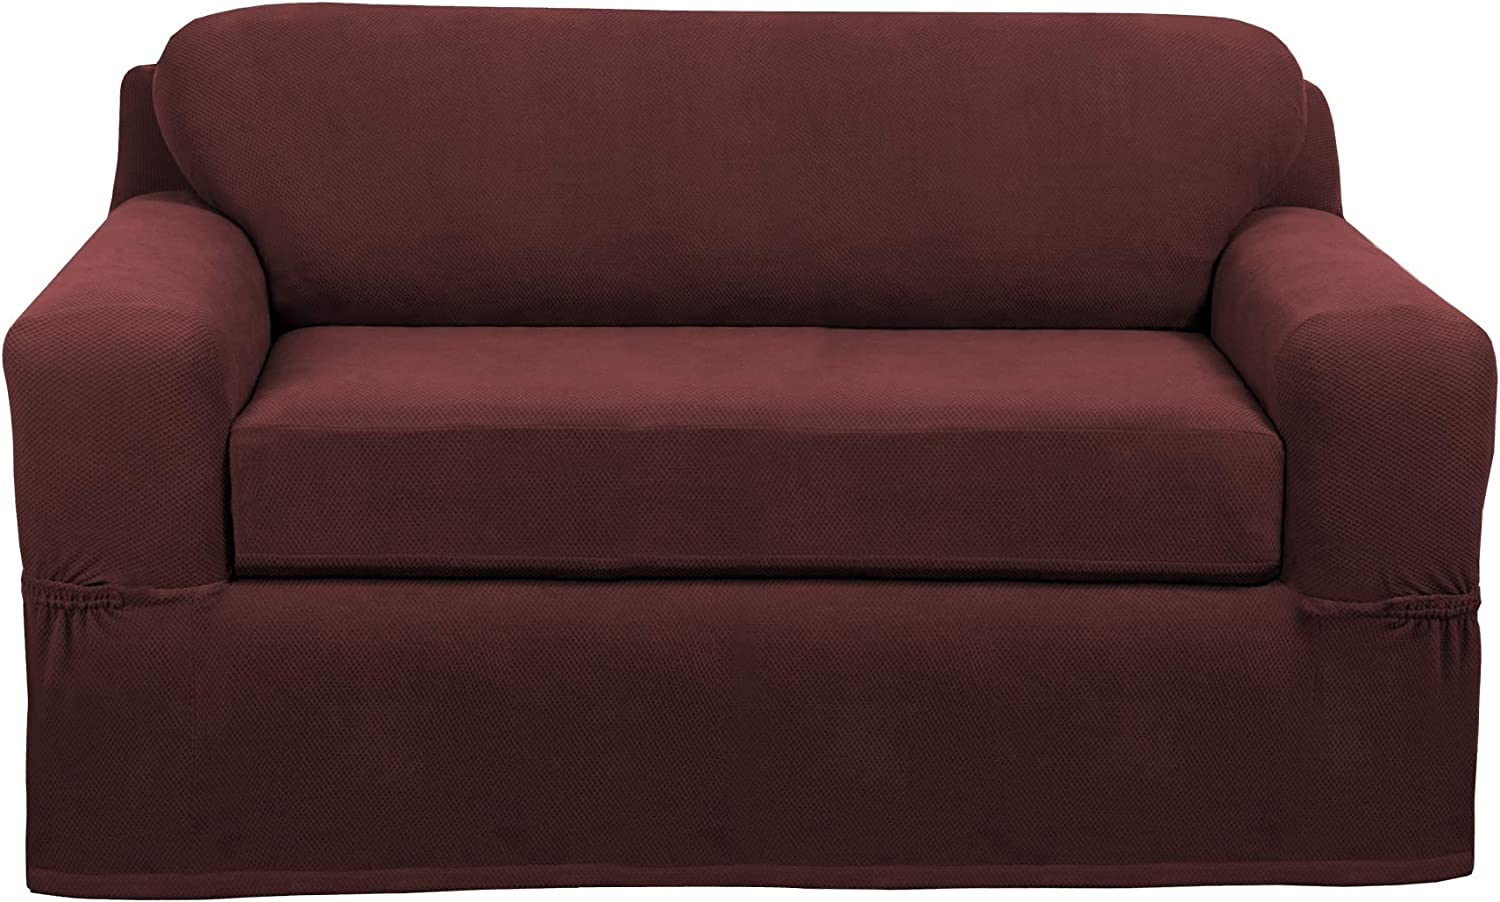 MAYTEX Pixel Ultra Soft Stretch 2 Piece Furniture Cover, Wine Red Loveseat Slipcover